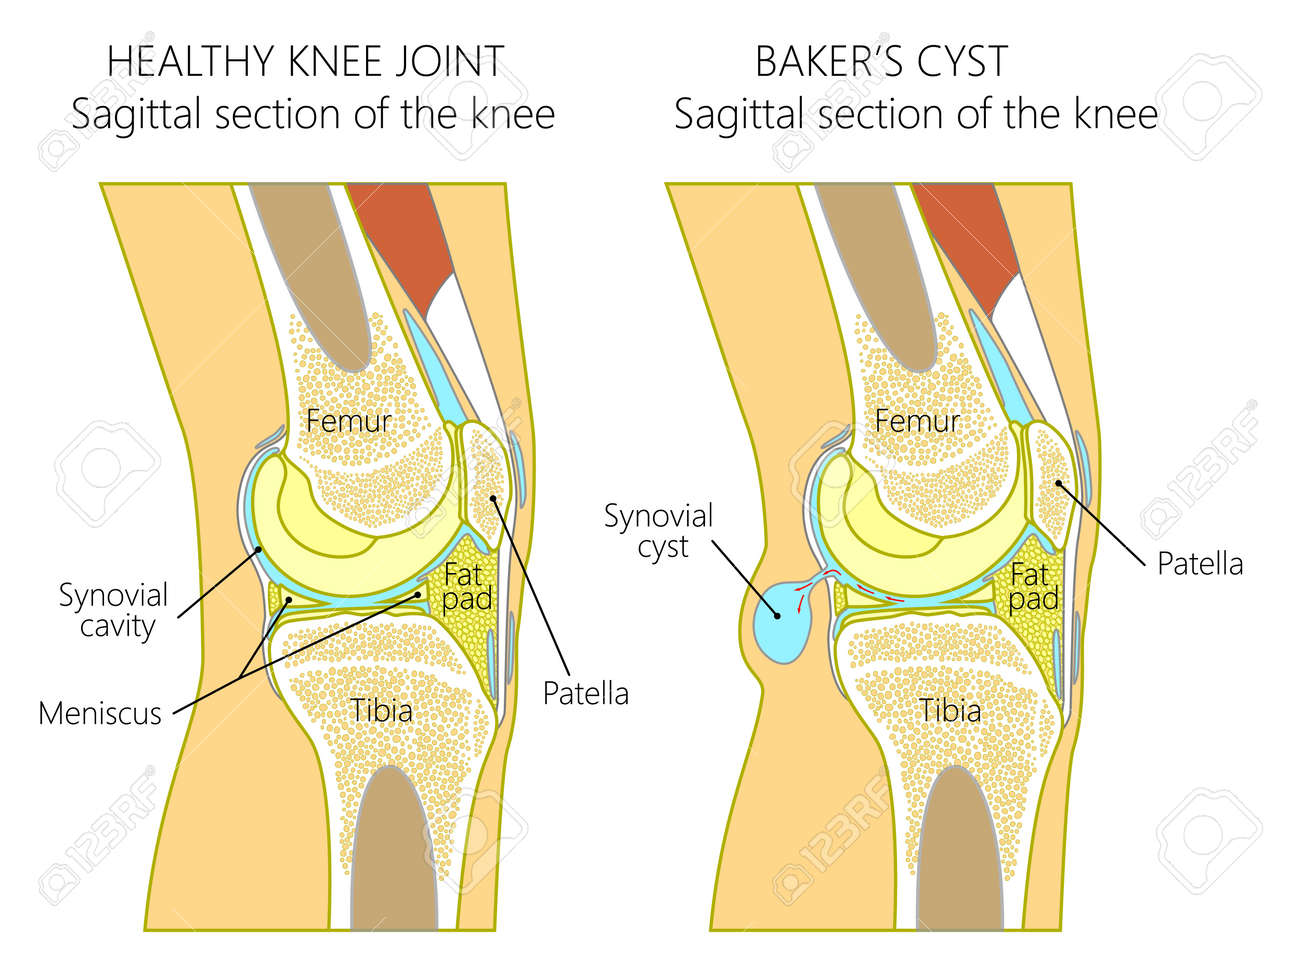 Vector illustration of a healthy human knee joint and unhealthy knee with Baker's cyst. Anatomy of human knee, sagittal section of the knee. for advertising and medical publications. EPS 10. - 91011202